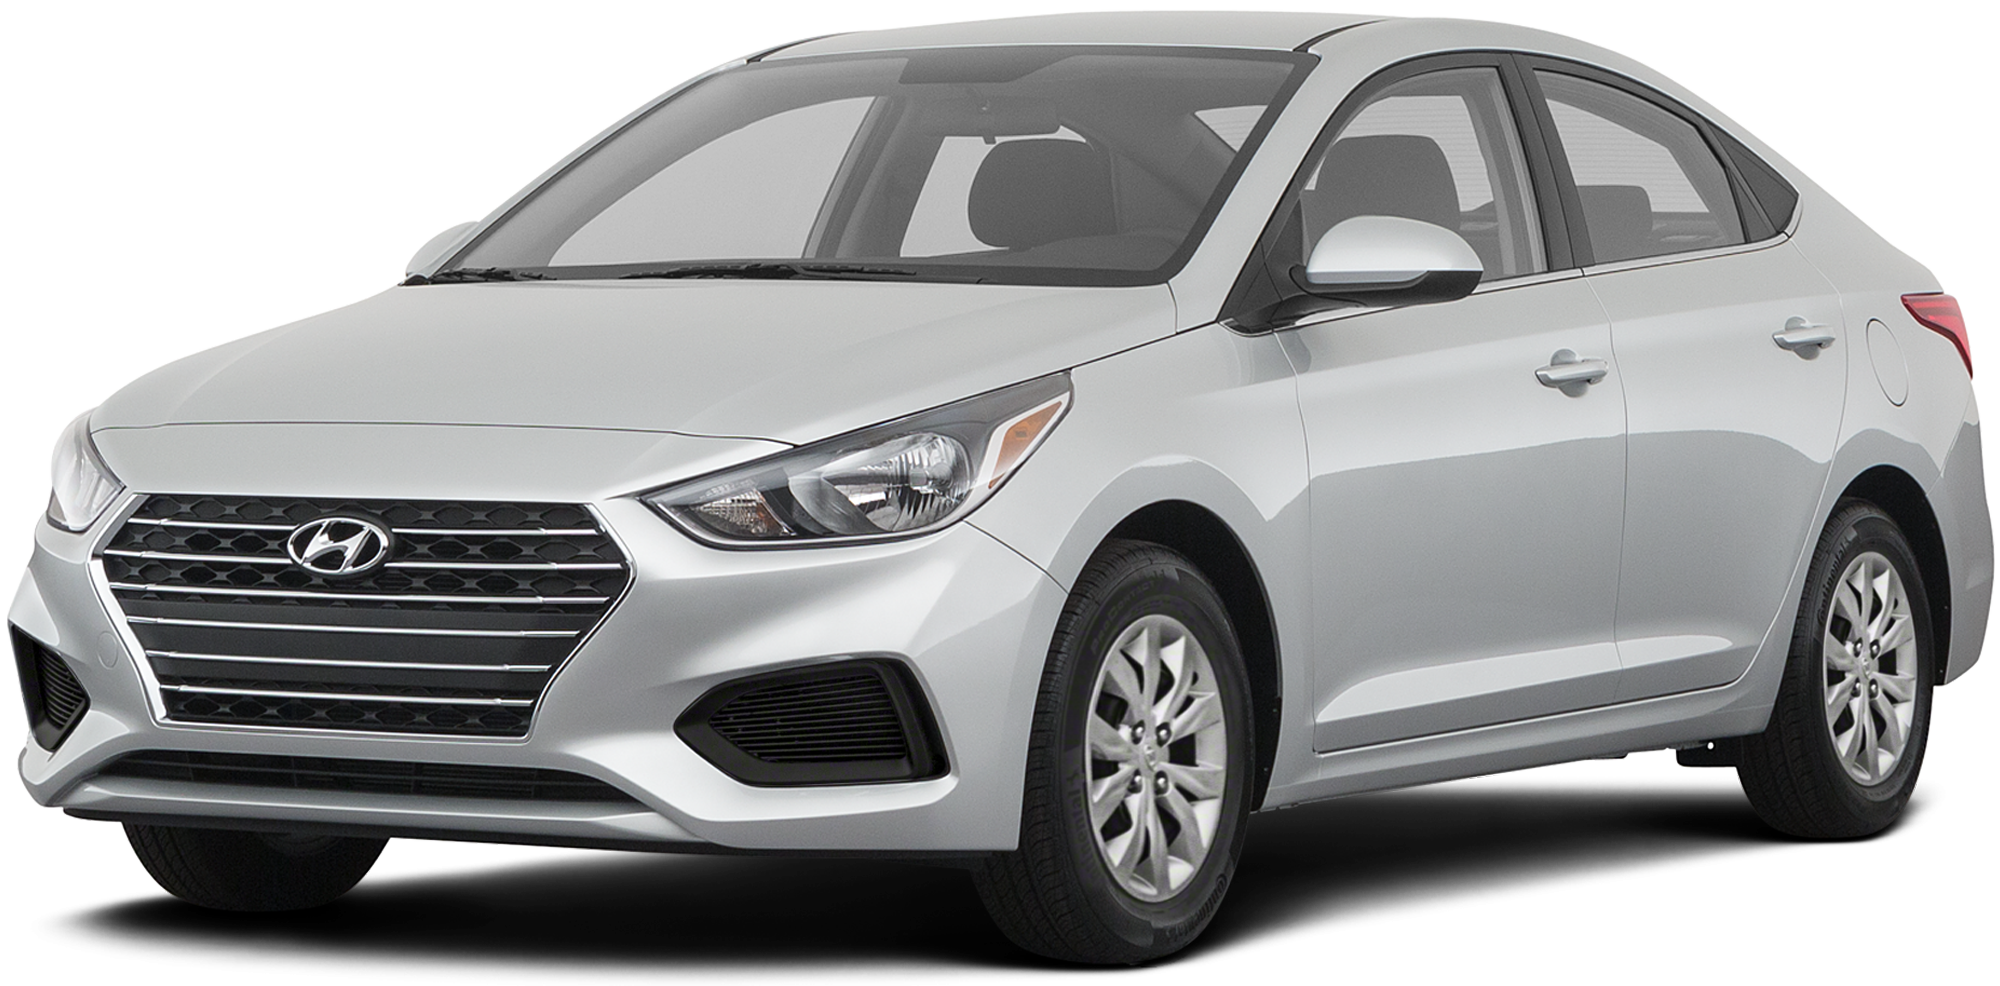 Herrnstein Hyundai Chillicothe >> 2020 Hyundai Accent Incentives, Specials & Offers in Chillicothe OH